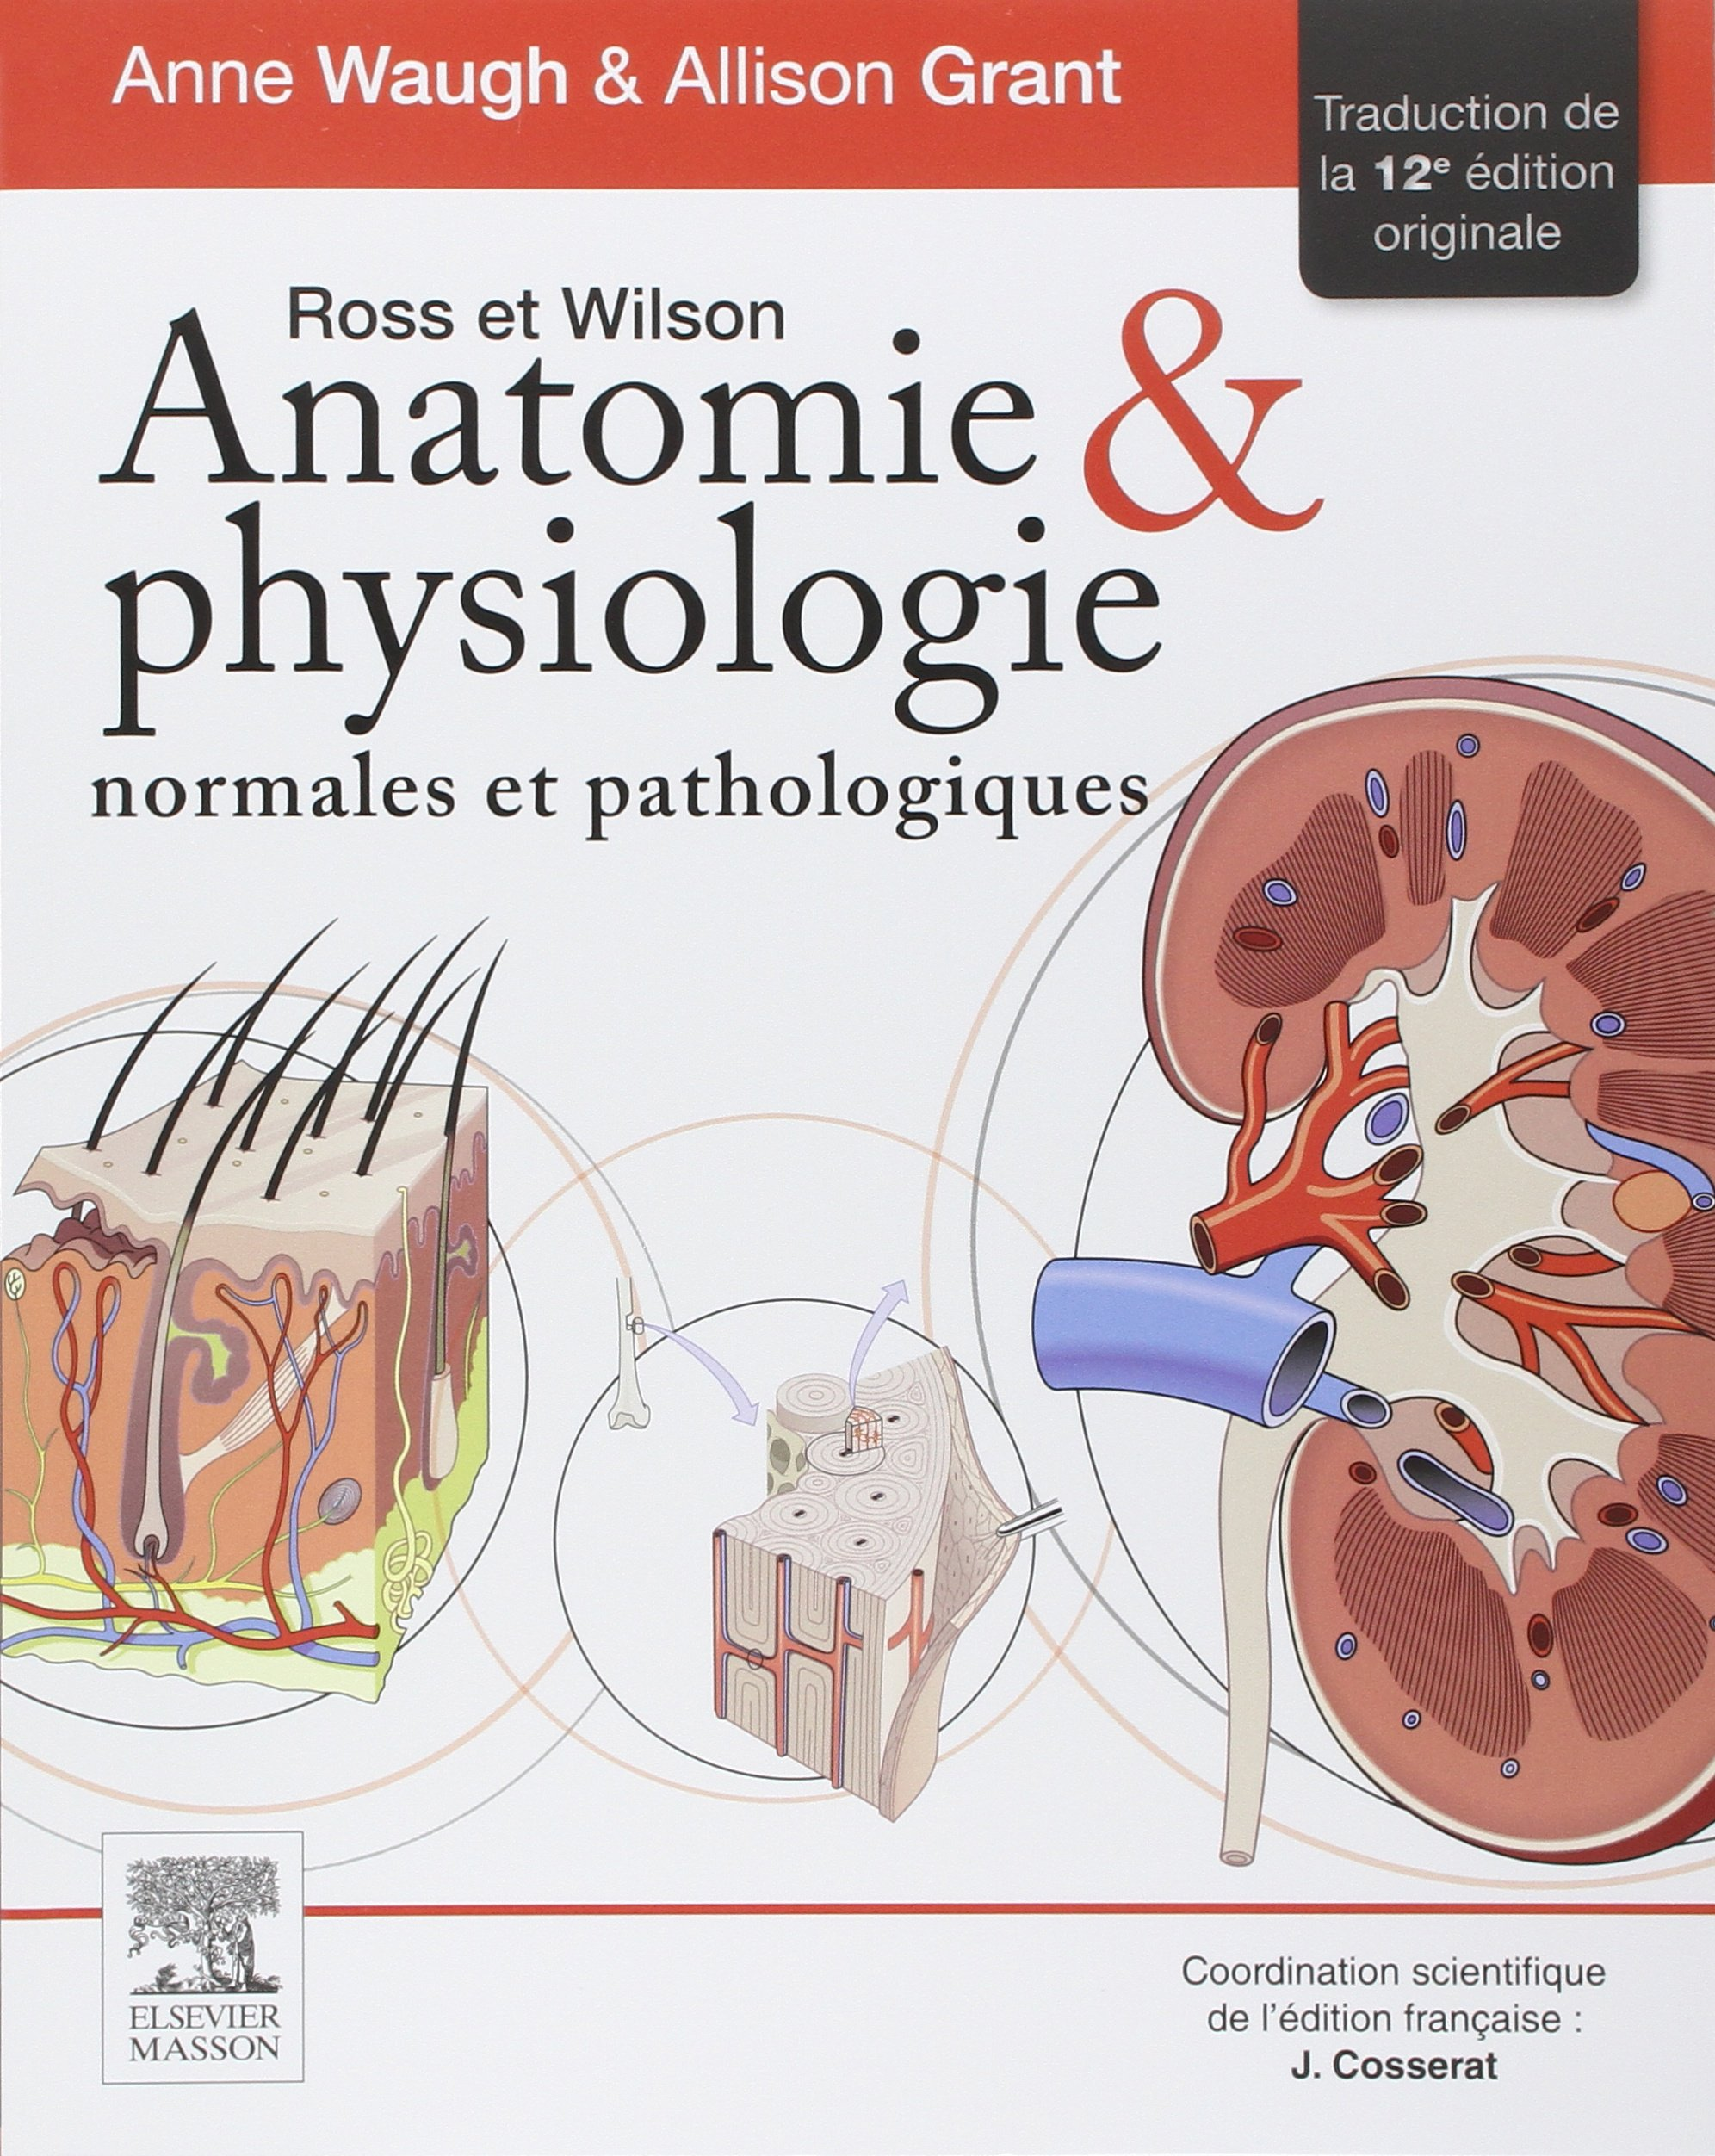 ROSS ET WILSON ANATOMIE ET PHYSIOLOGIE 12E ÉD.: Amazon.ca: Anne ...